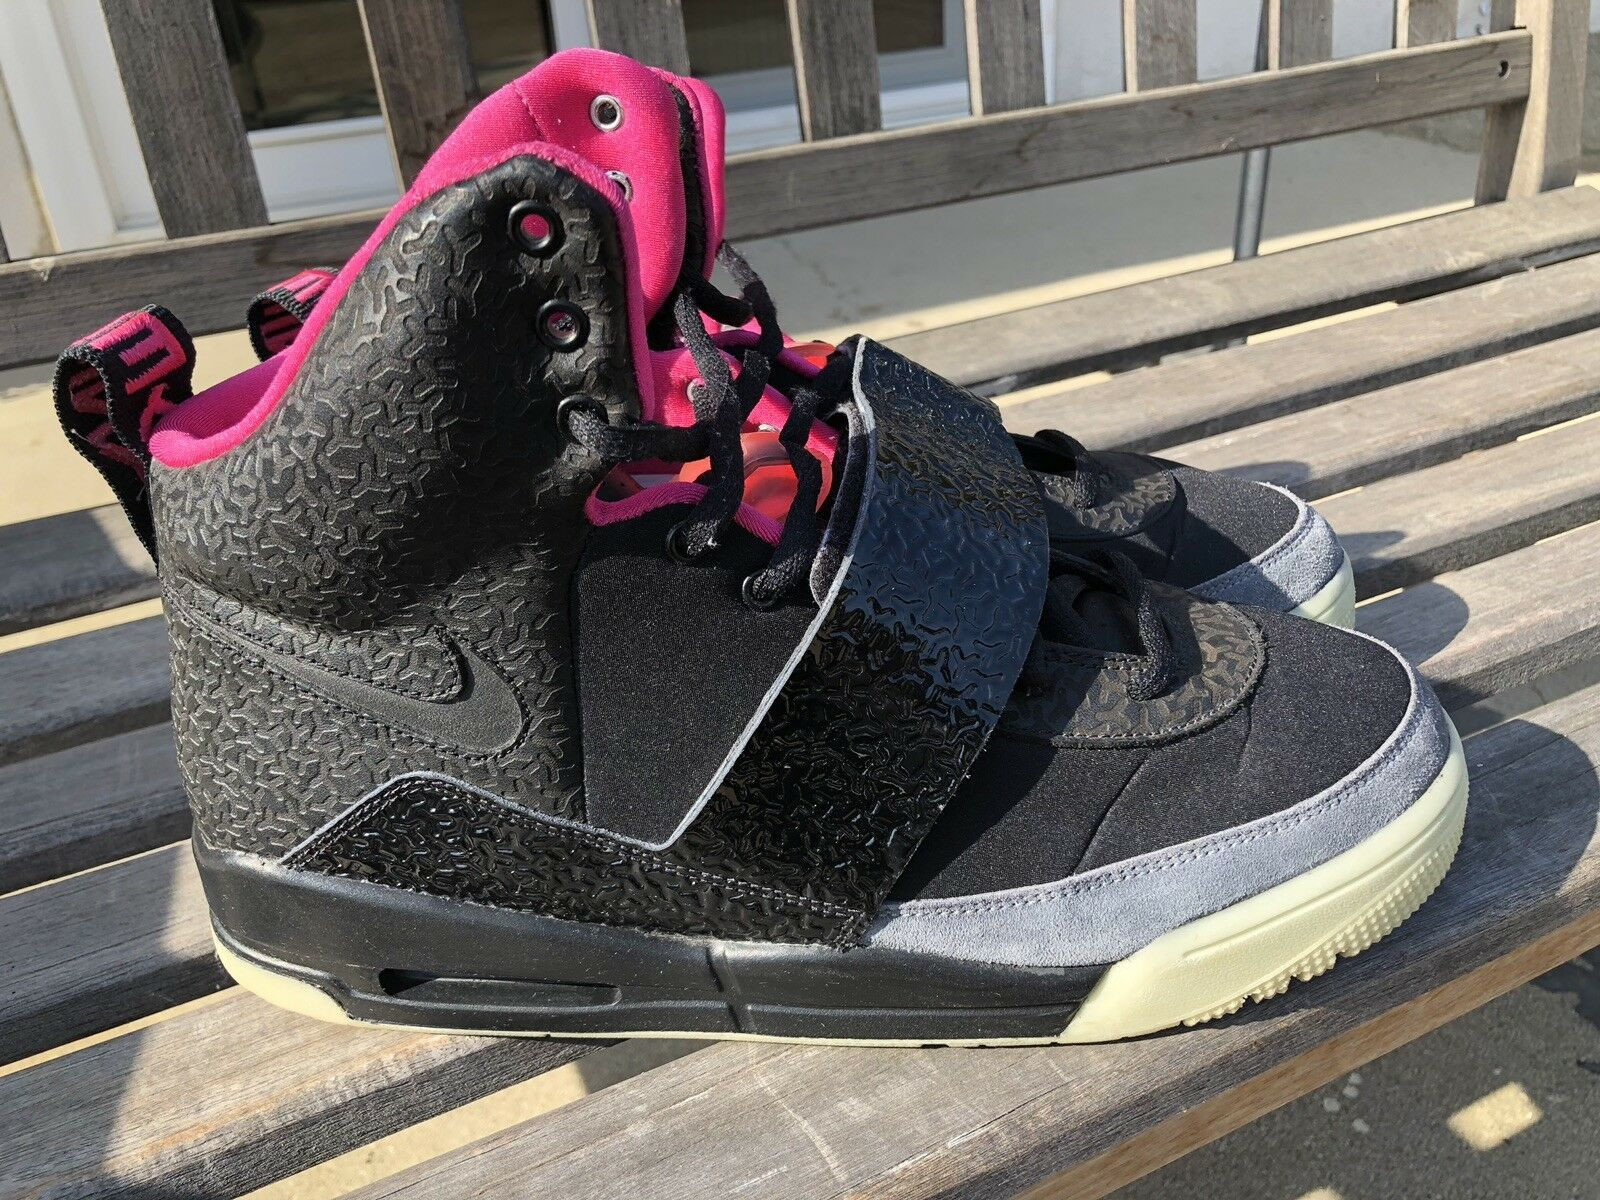 innovative design ab41c be04a Nike Air Yeezy Blink Black Pink 2009 Size 10.5 100% AUTHENTIC Kanye West